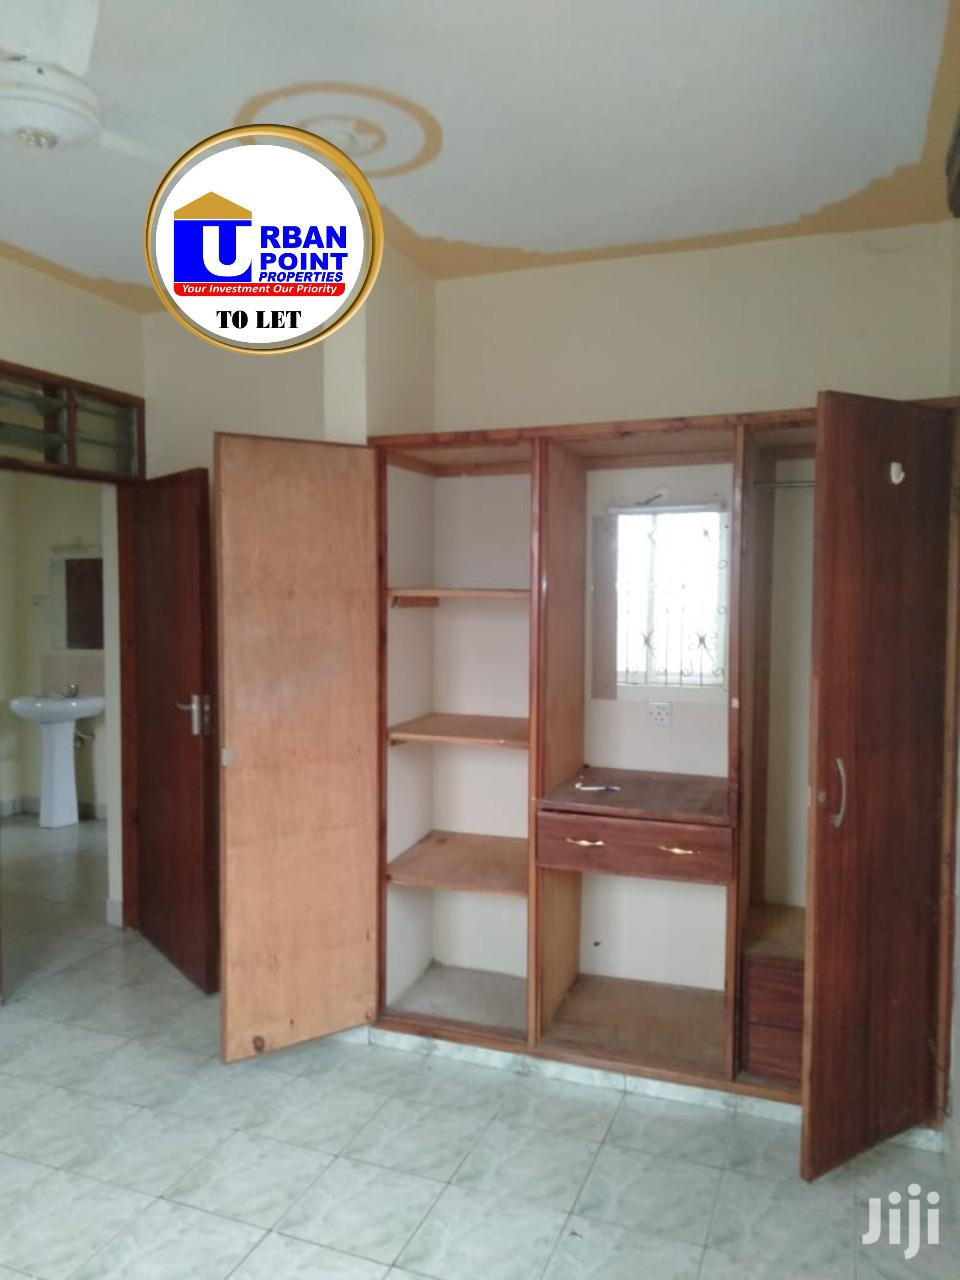 To Let Two Bedroom Apartment In Nyali Mombasa